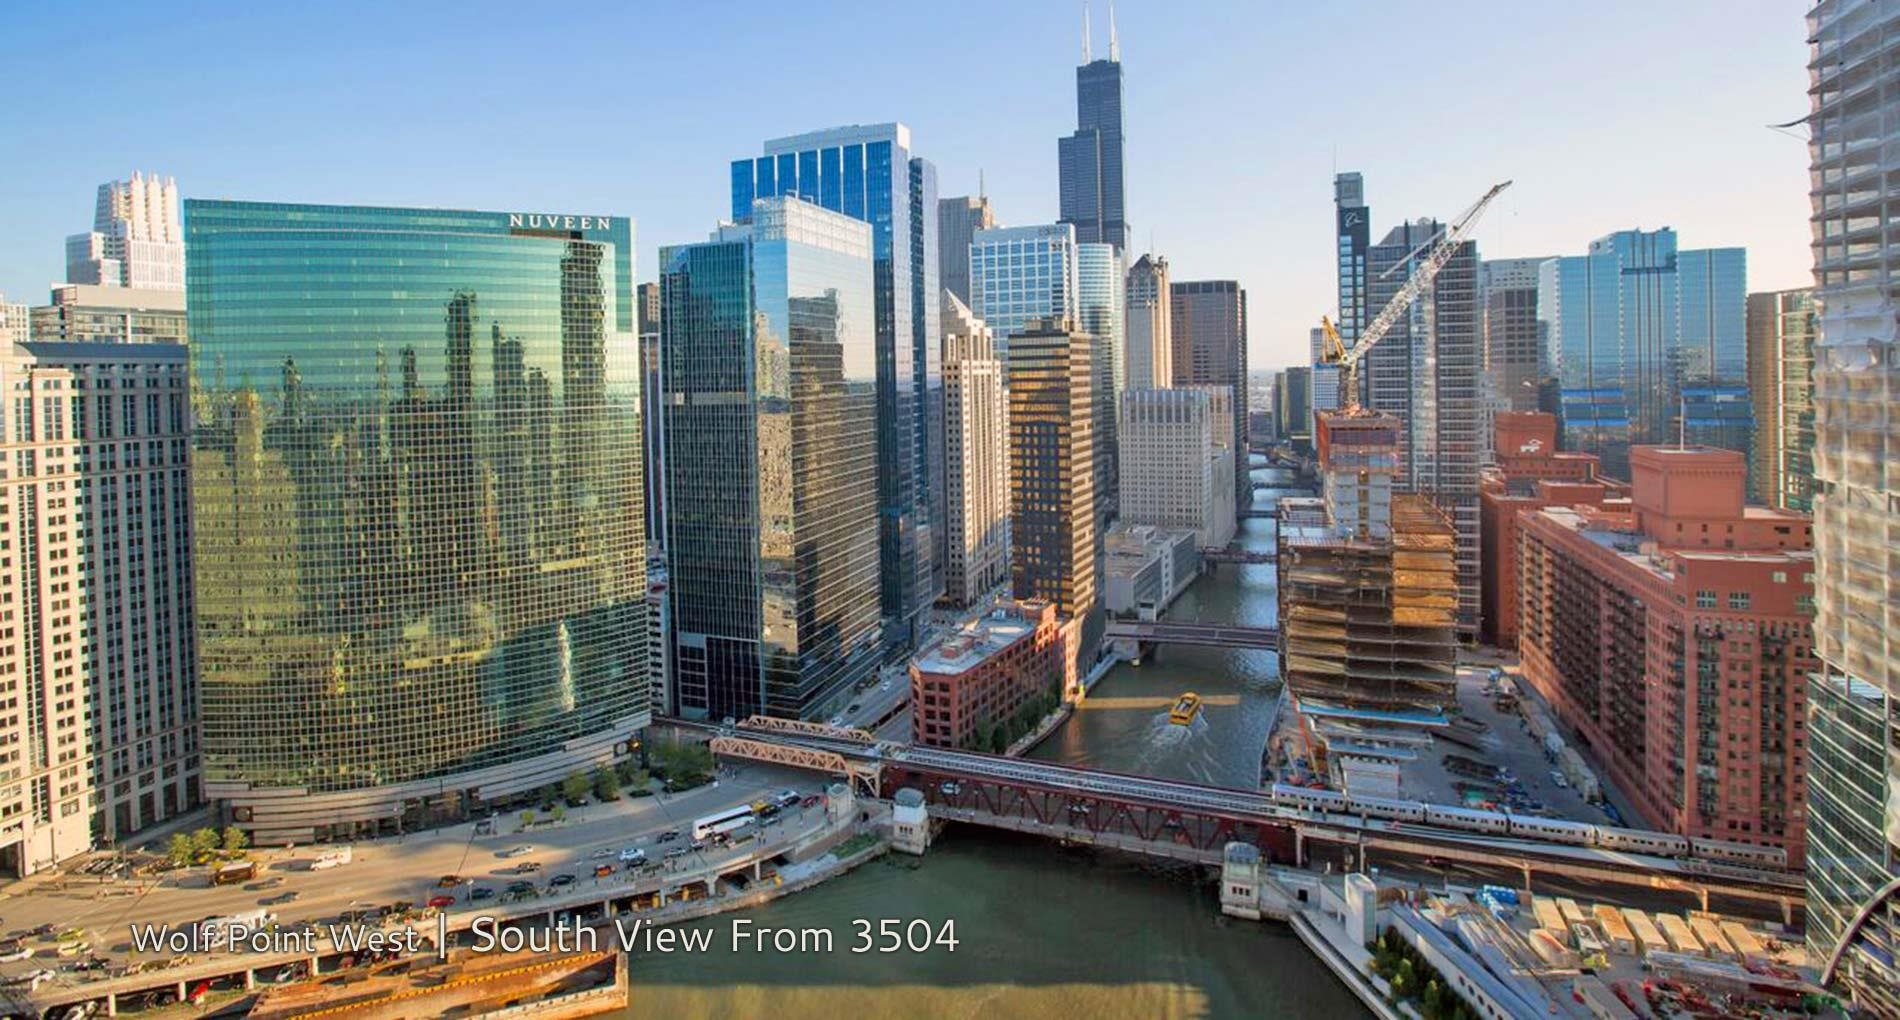 Wolf Point West | South View From 3504